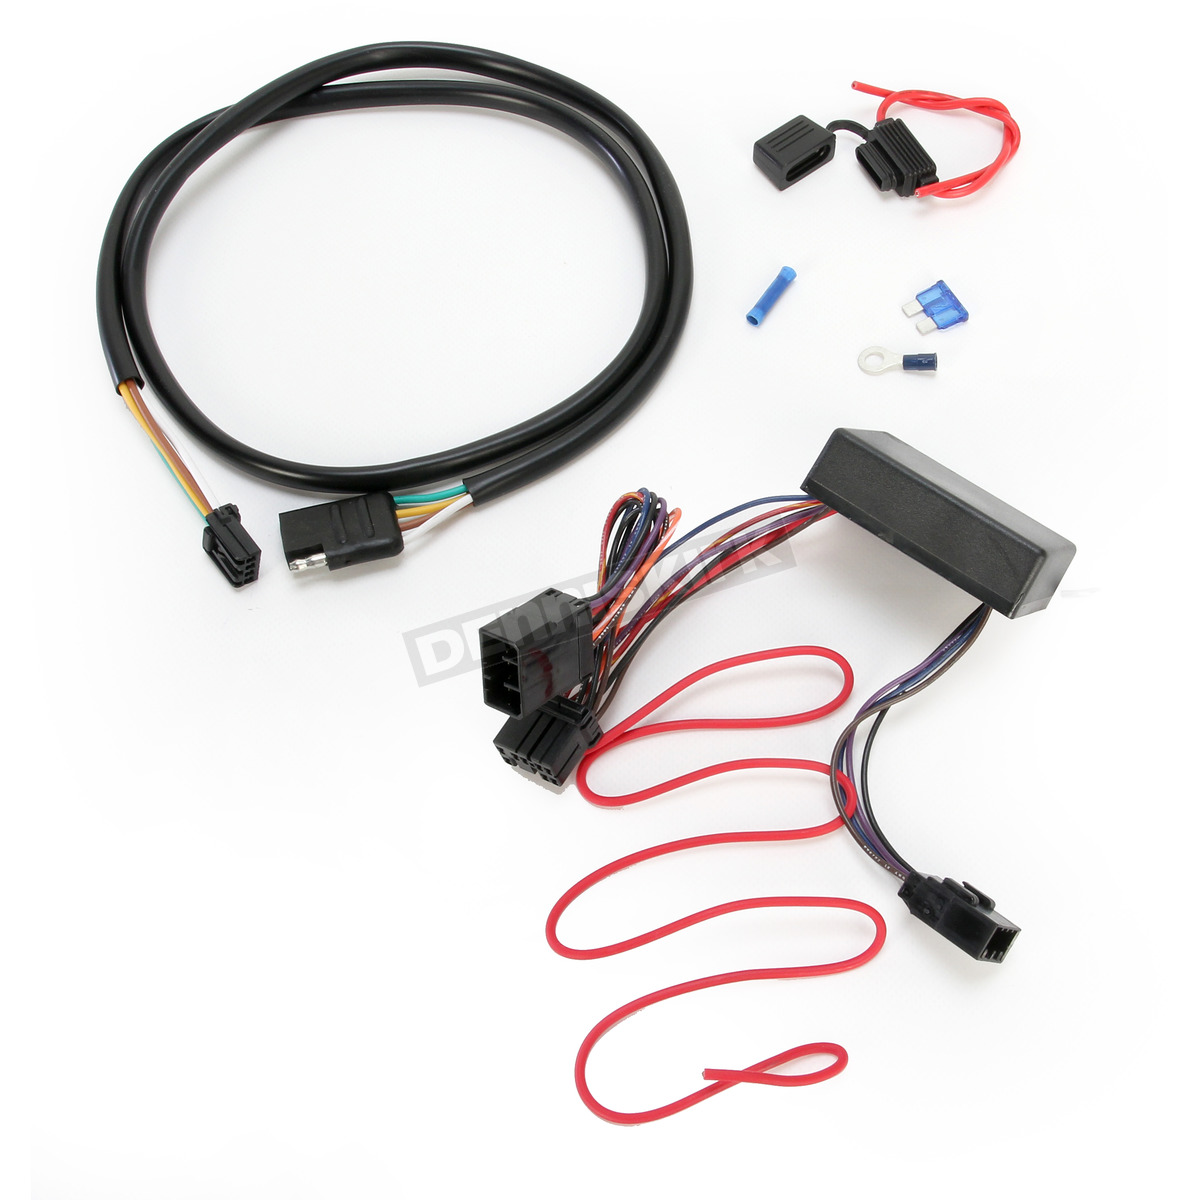 Pleasing Khrome Werks Plug And Play Trailer Wiring Connector Kit W 4 Wire Wiring Cloud Mangdienstapotheekhoekschewaardnl